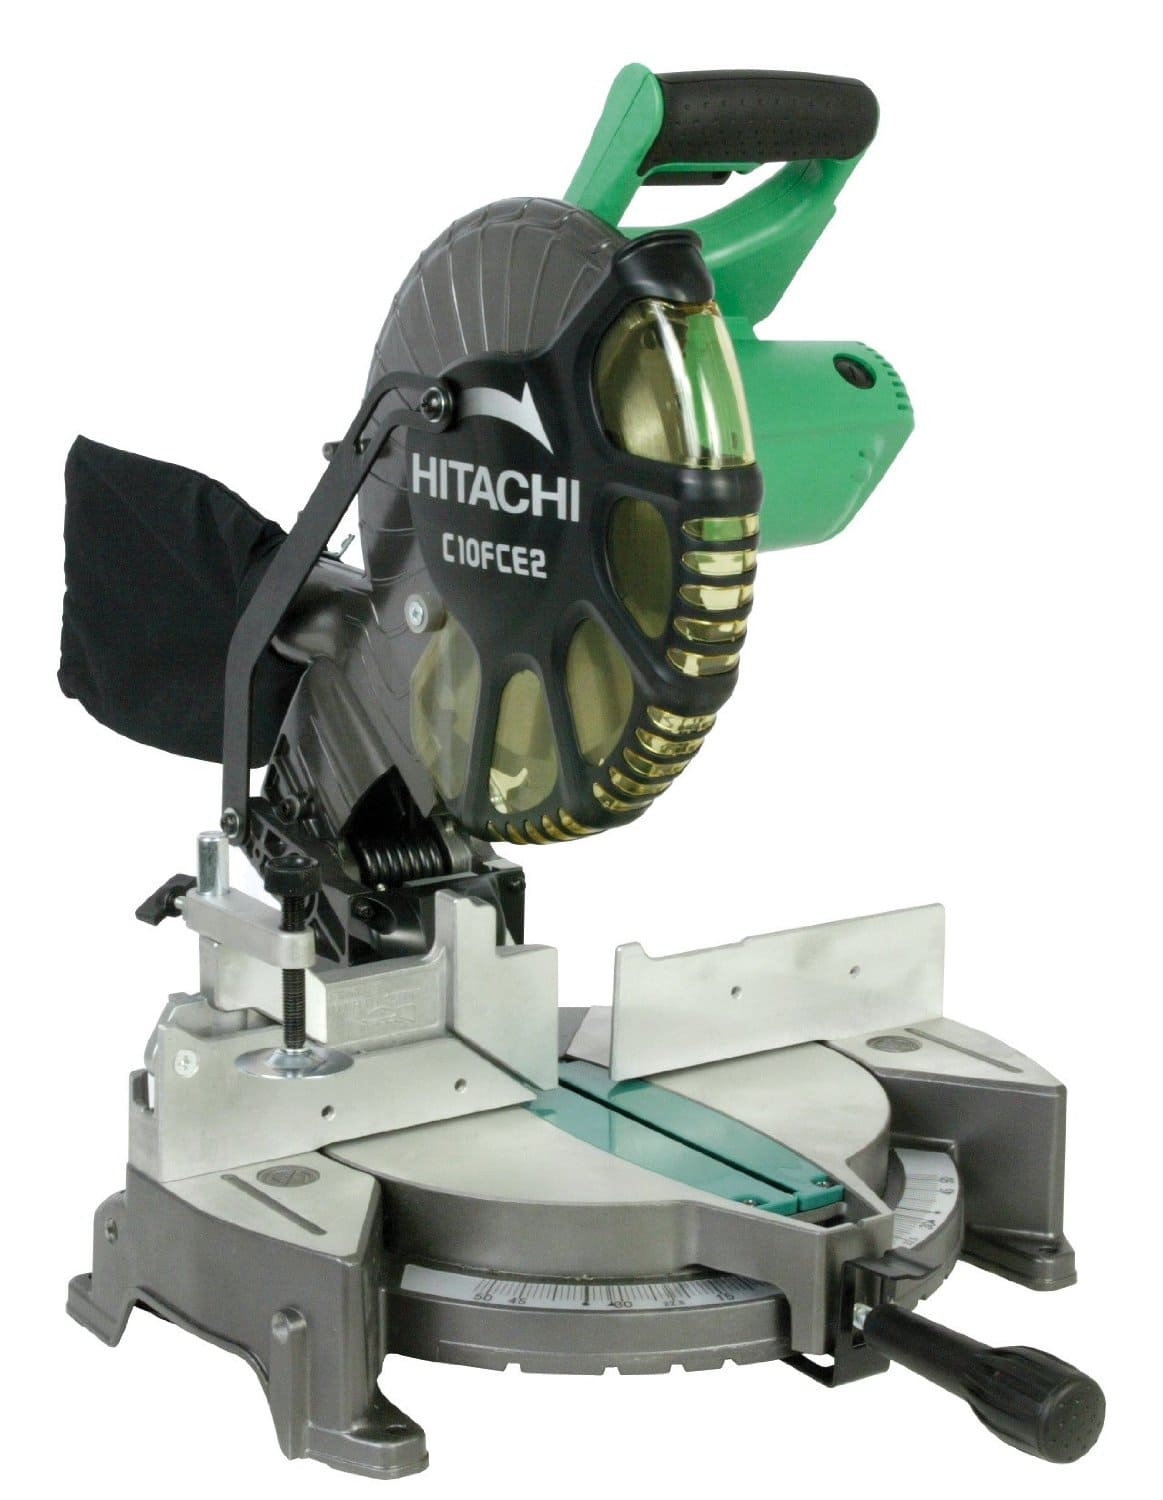 Hitachi C10FCE2 15-Amp 10-inch Single Bevel Compound Miter Saw $93.13 with free shipping from Amazon